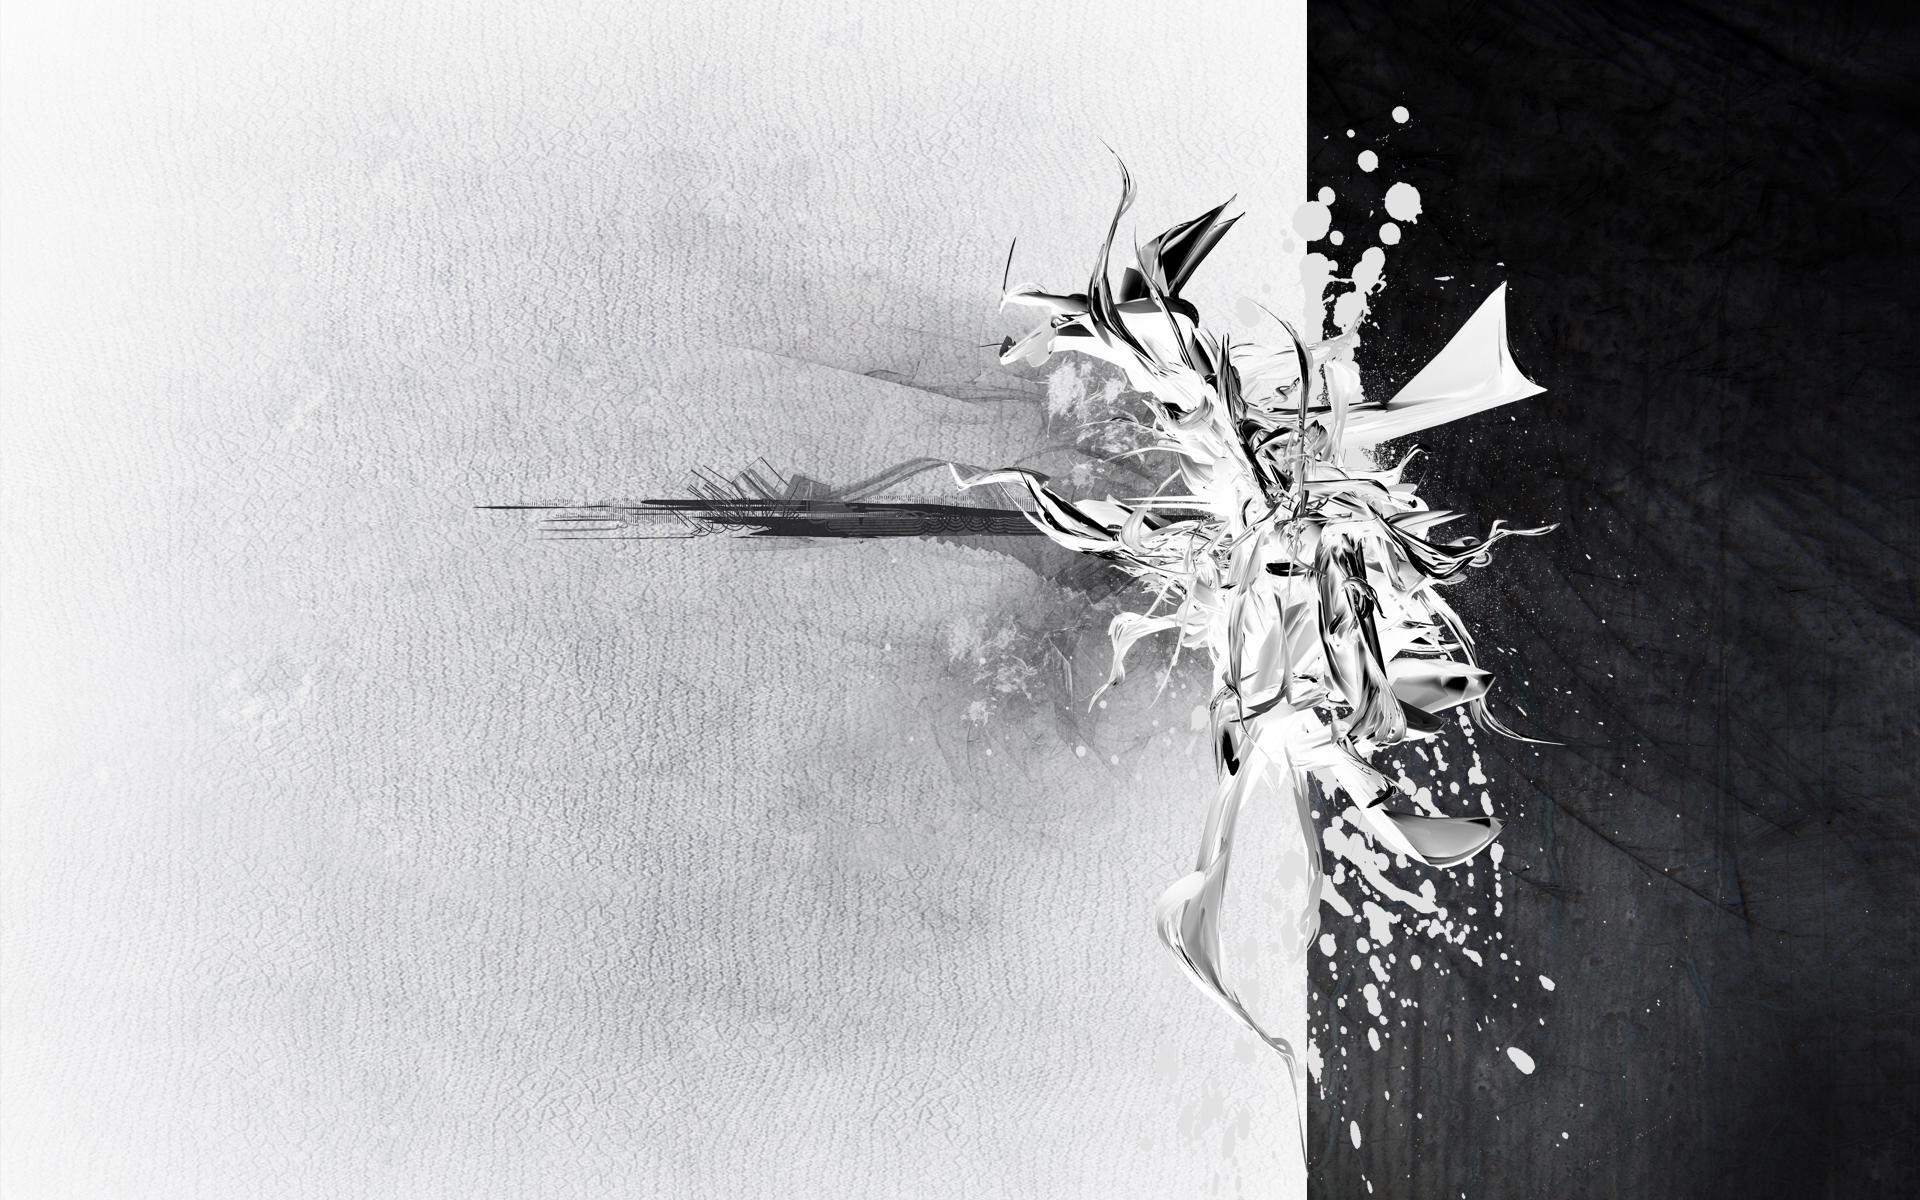 Black and White Abstract Wallpapers, Free Black and White Abstract ...